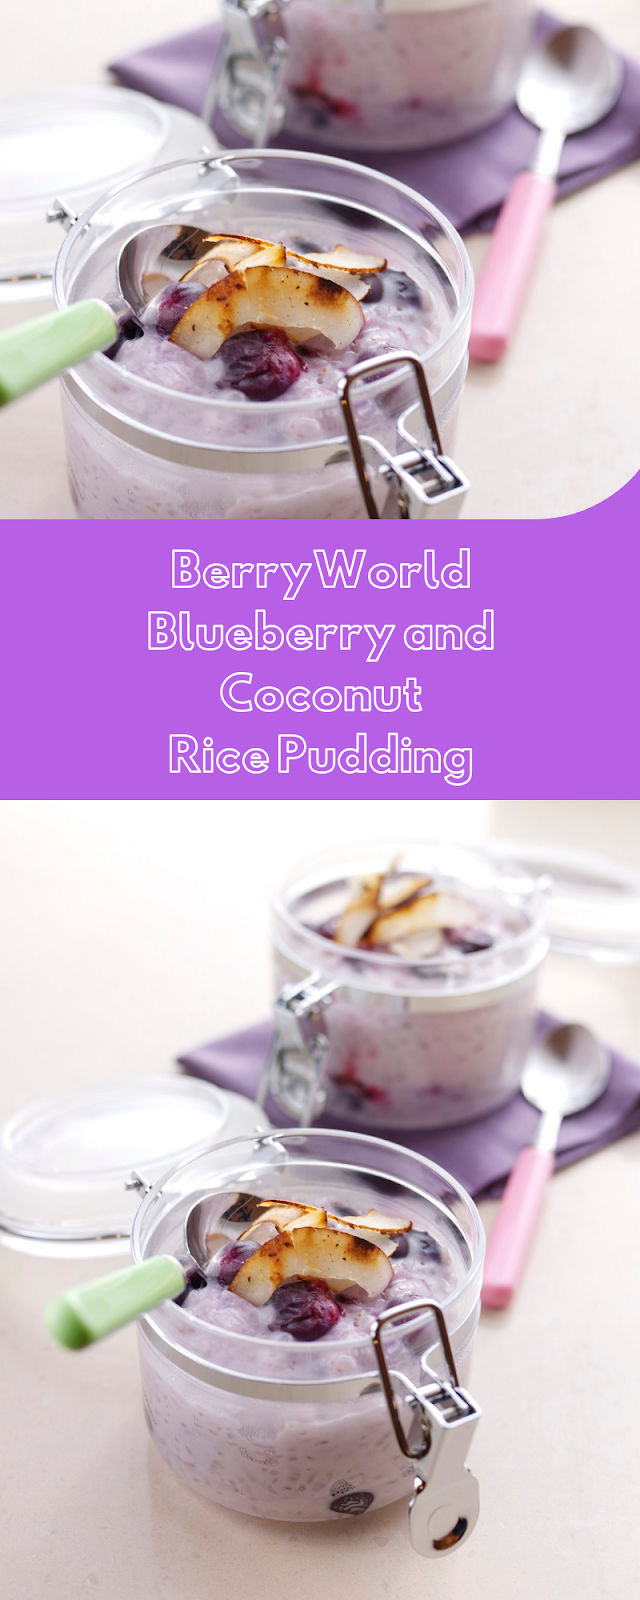 BerryWorld Blueberry and Coconut Rice Pudding